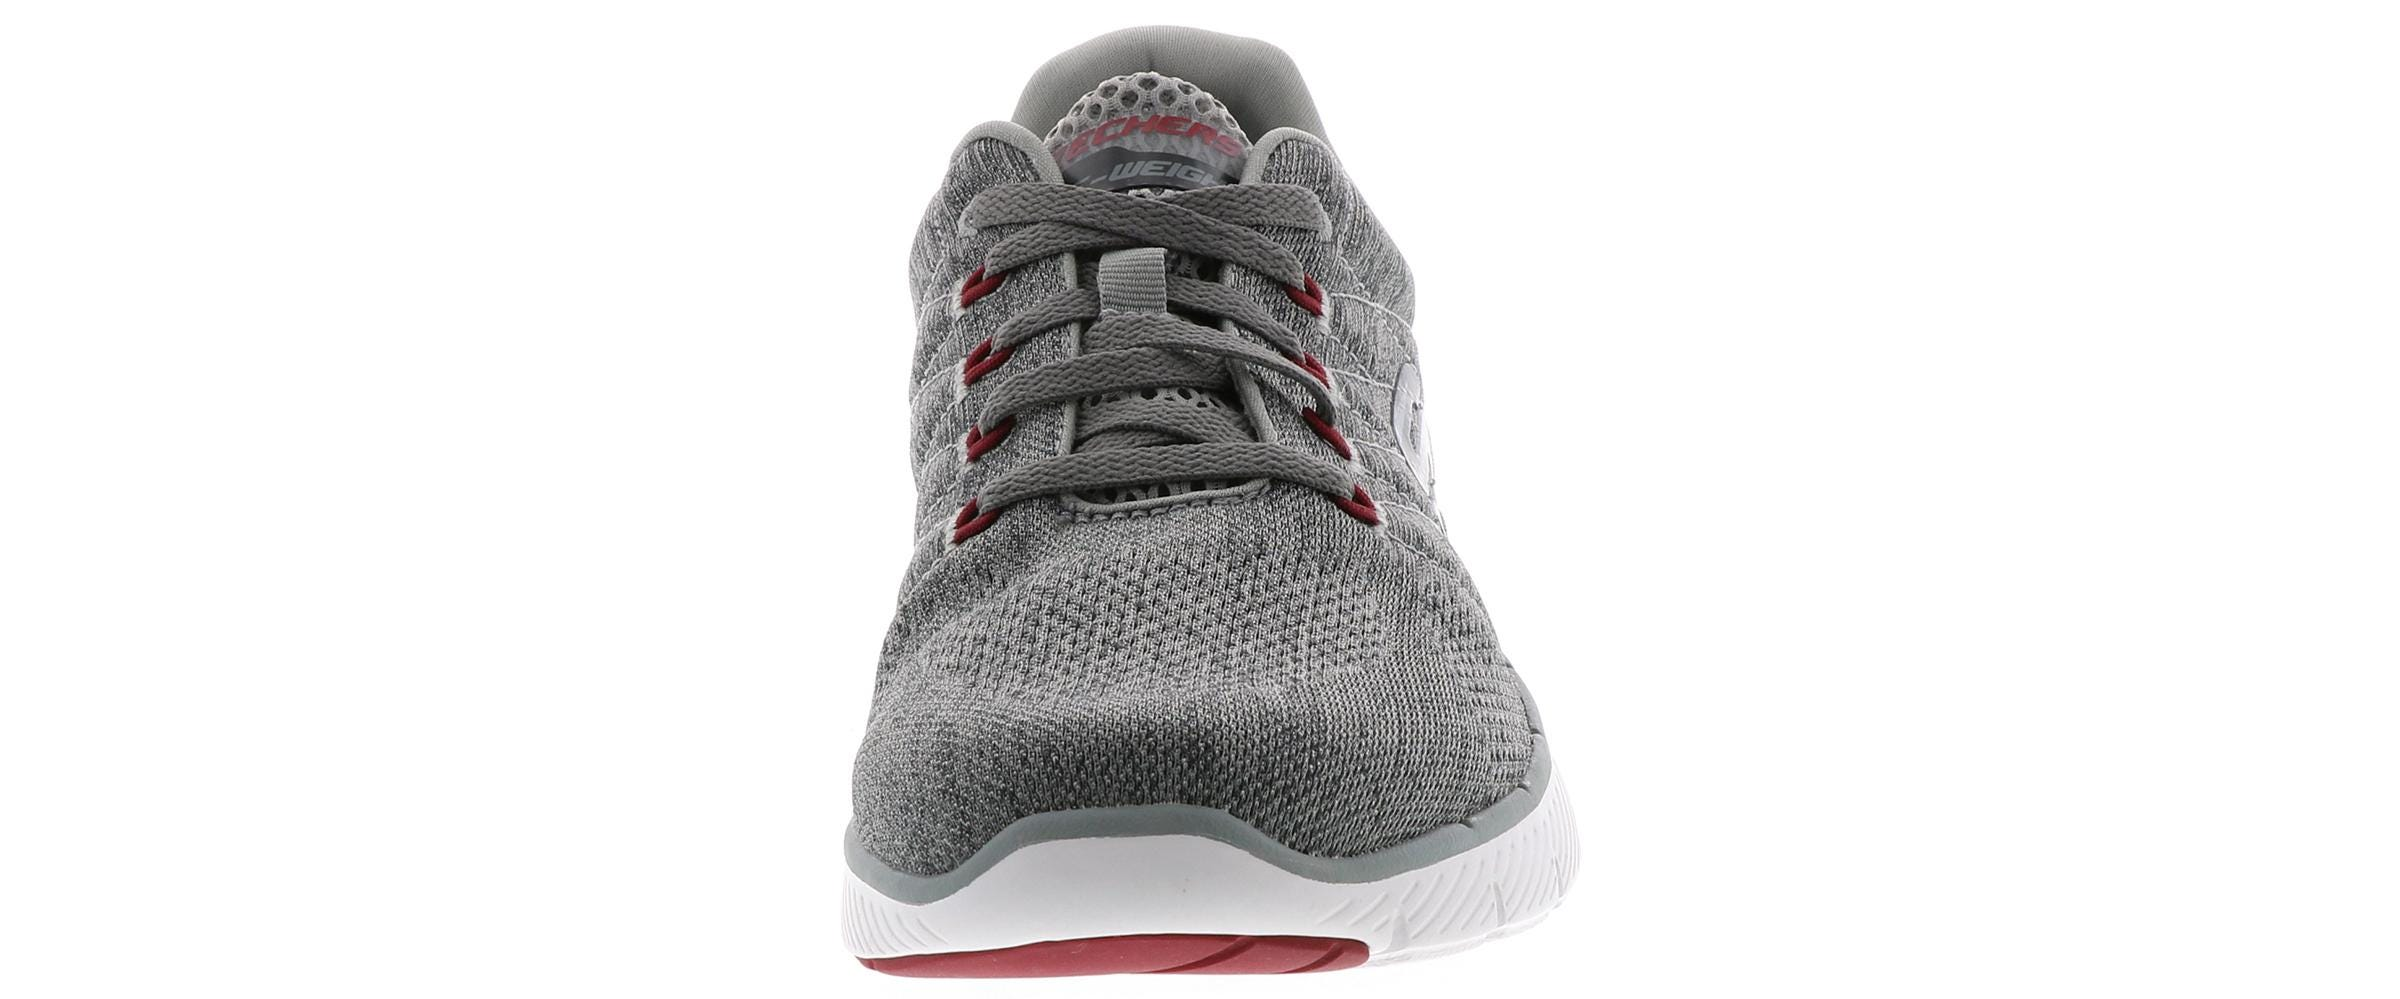 Men's Skechers Flex Advantage 3.0 Stally